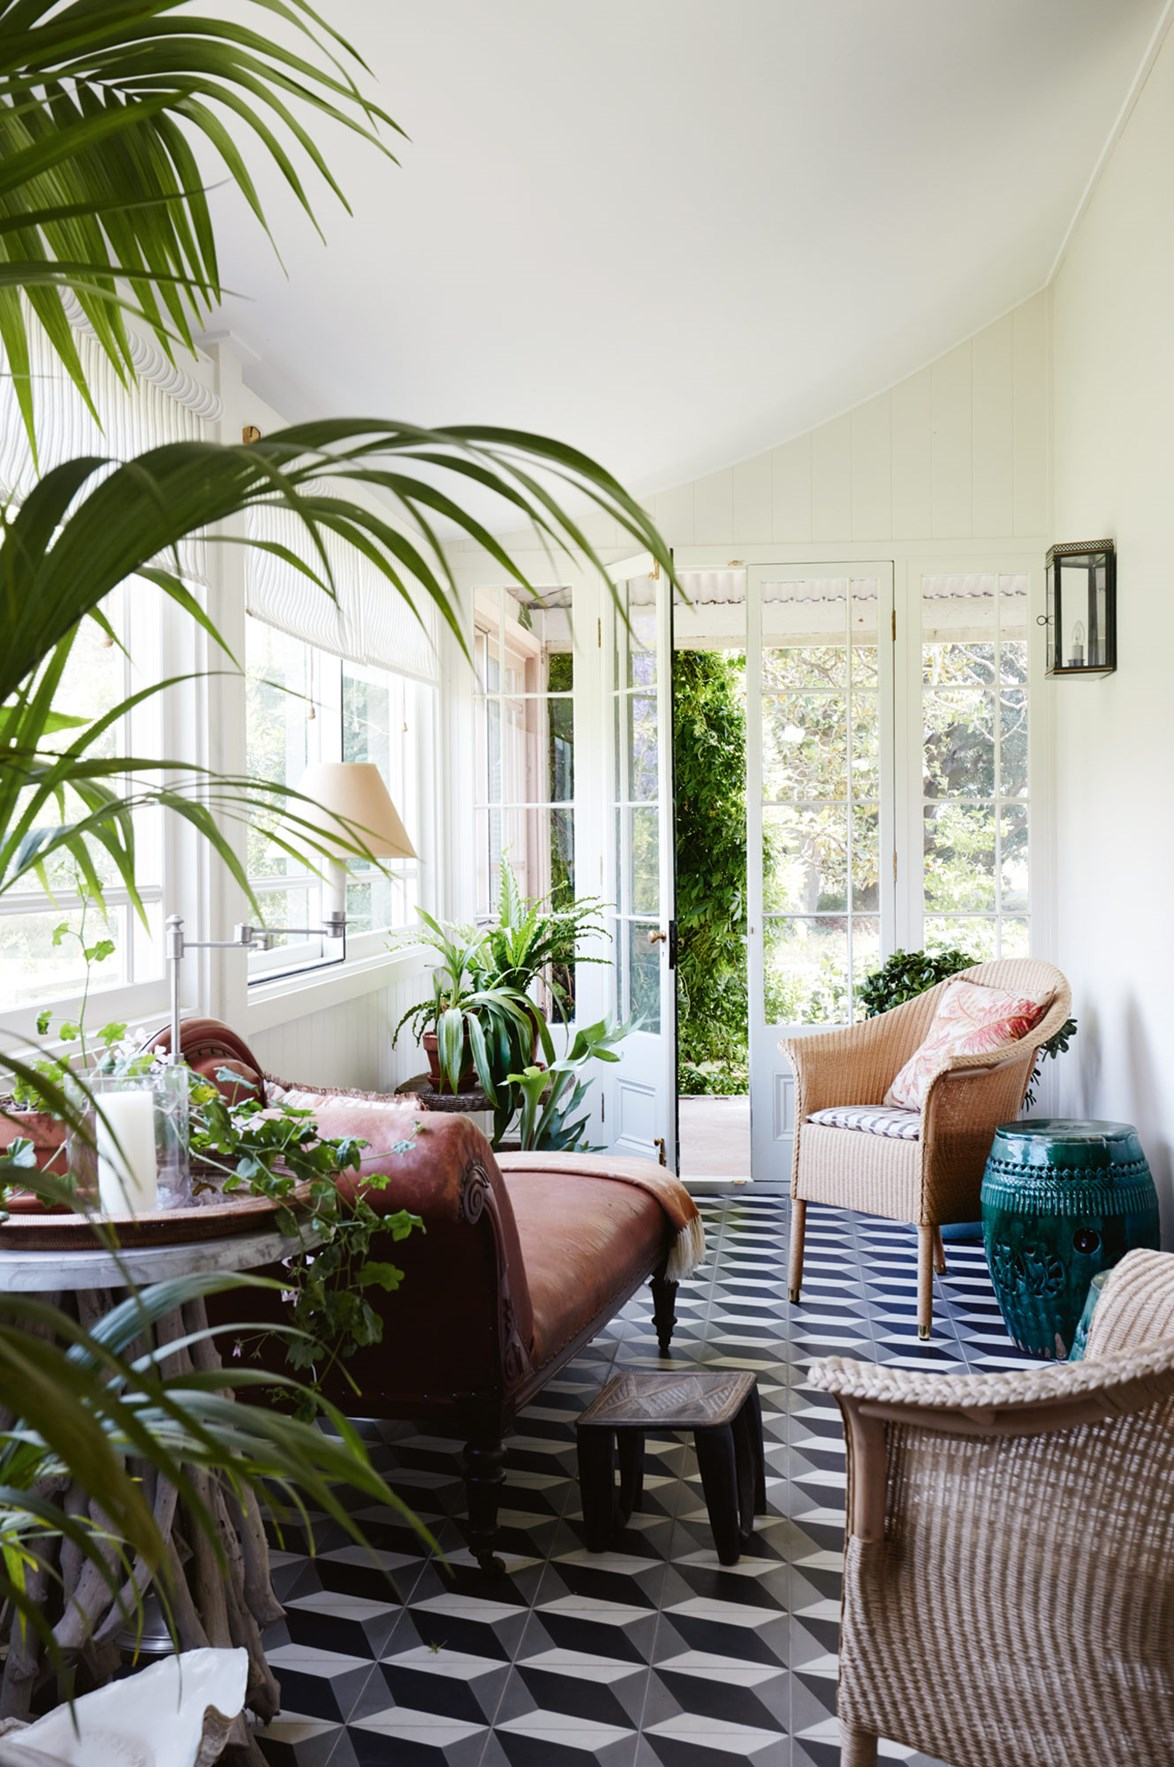 "<P>**BRING IN THE GREENERY**<p> <p>Living in an older home usually means embracing a collection of antique and vintage furniture to match. But if things begin to feel too stiff and formal, [indoor plants](https://www.homestolove.com.au/top-15-indoor-plants-13251|target=""_blank"") will be your saviour. At [Terragong Bed and Breakfast](https://www.homestolove.com.au/terragong-bed-and-breakfast-jamberoo-13867